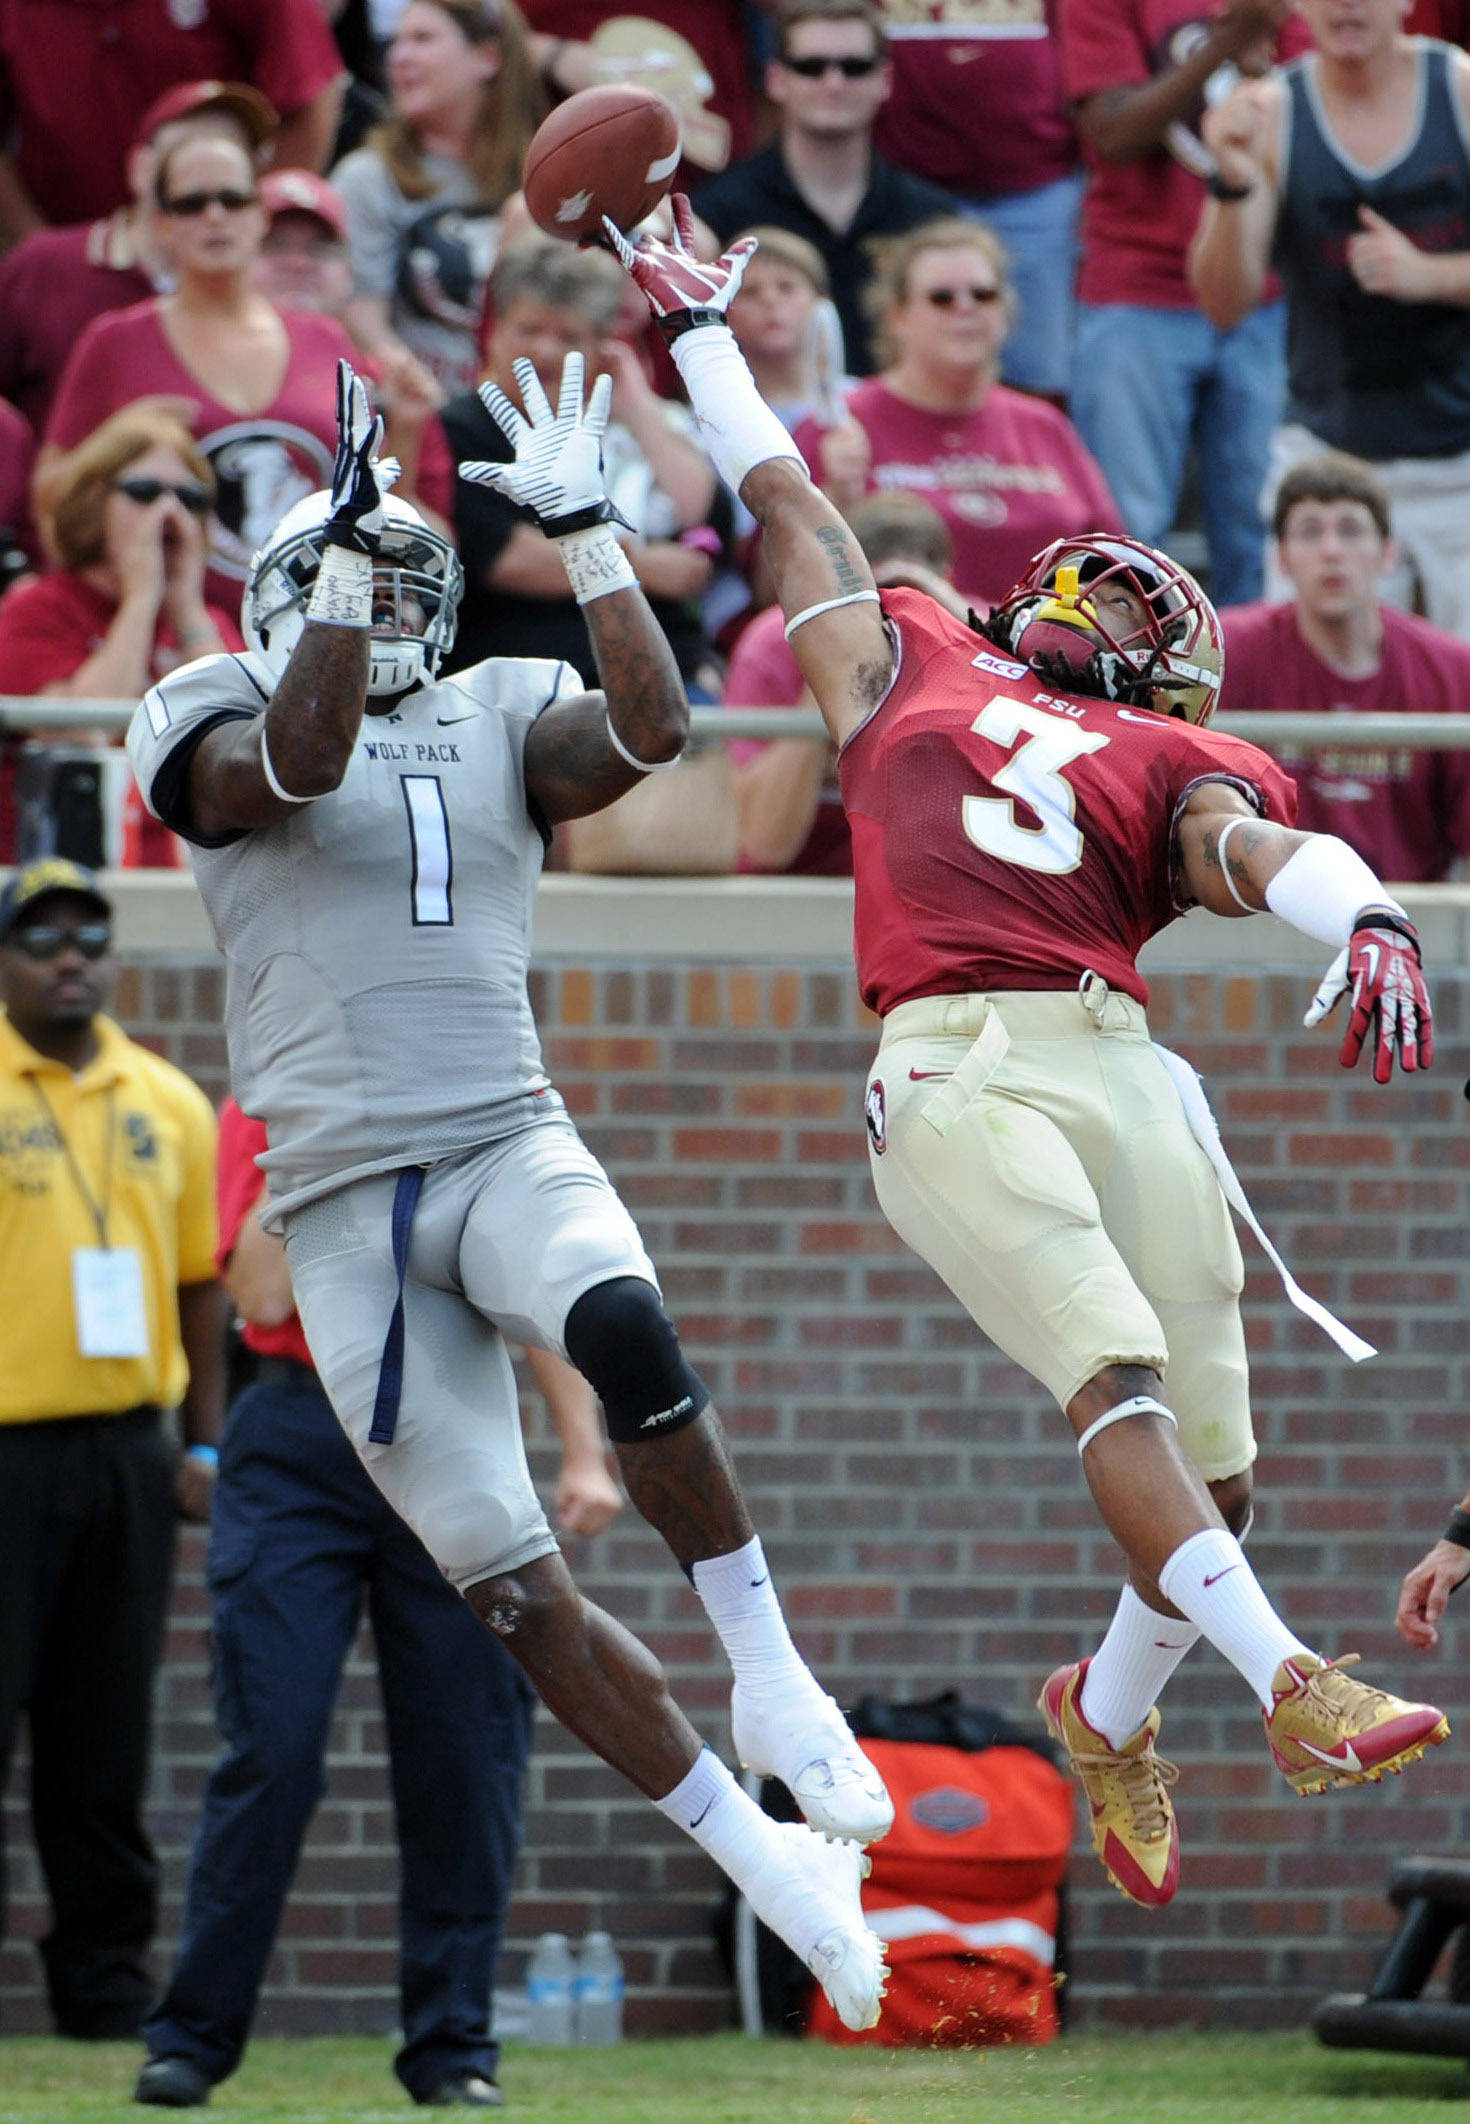 Sep 14, 2013; Tallahassee, FL, USA; Nevada Wolf Pack wide receiver Brandon Wimberly (1) cannot make a catch due to defense from Florida State Seminoles defensive back Ronald Darby (3) during the first half of the game at Doak Campbell Stadium. Mandatory Credit: Melina Vastola-USA TODAY Sports